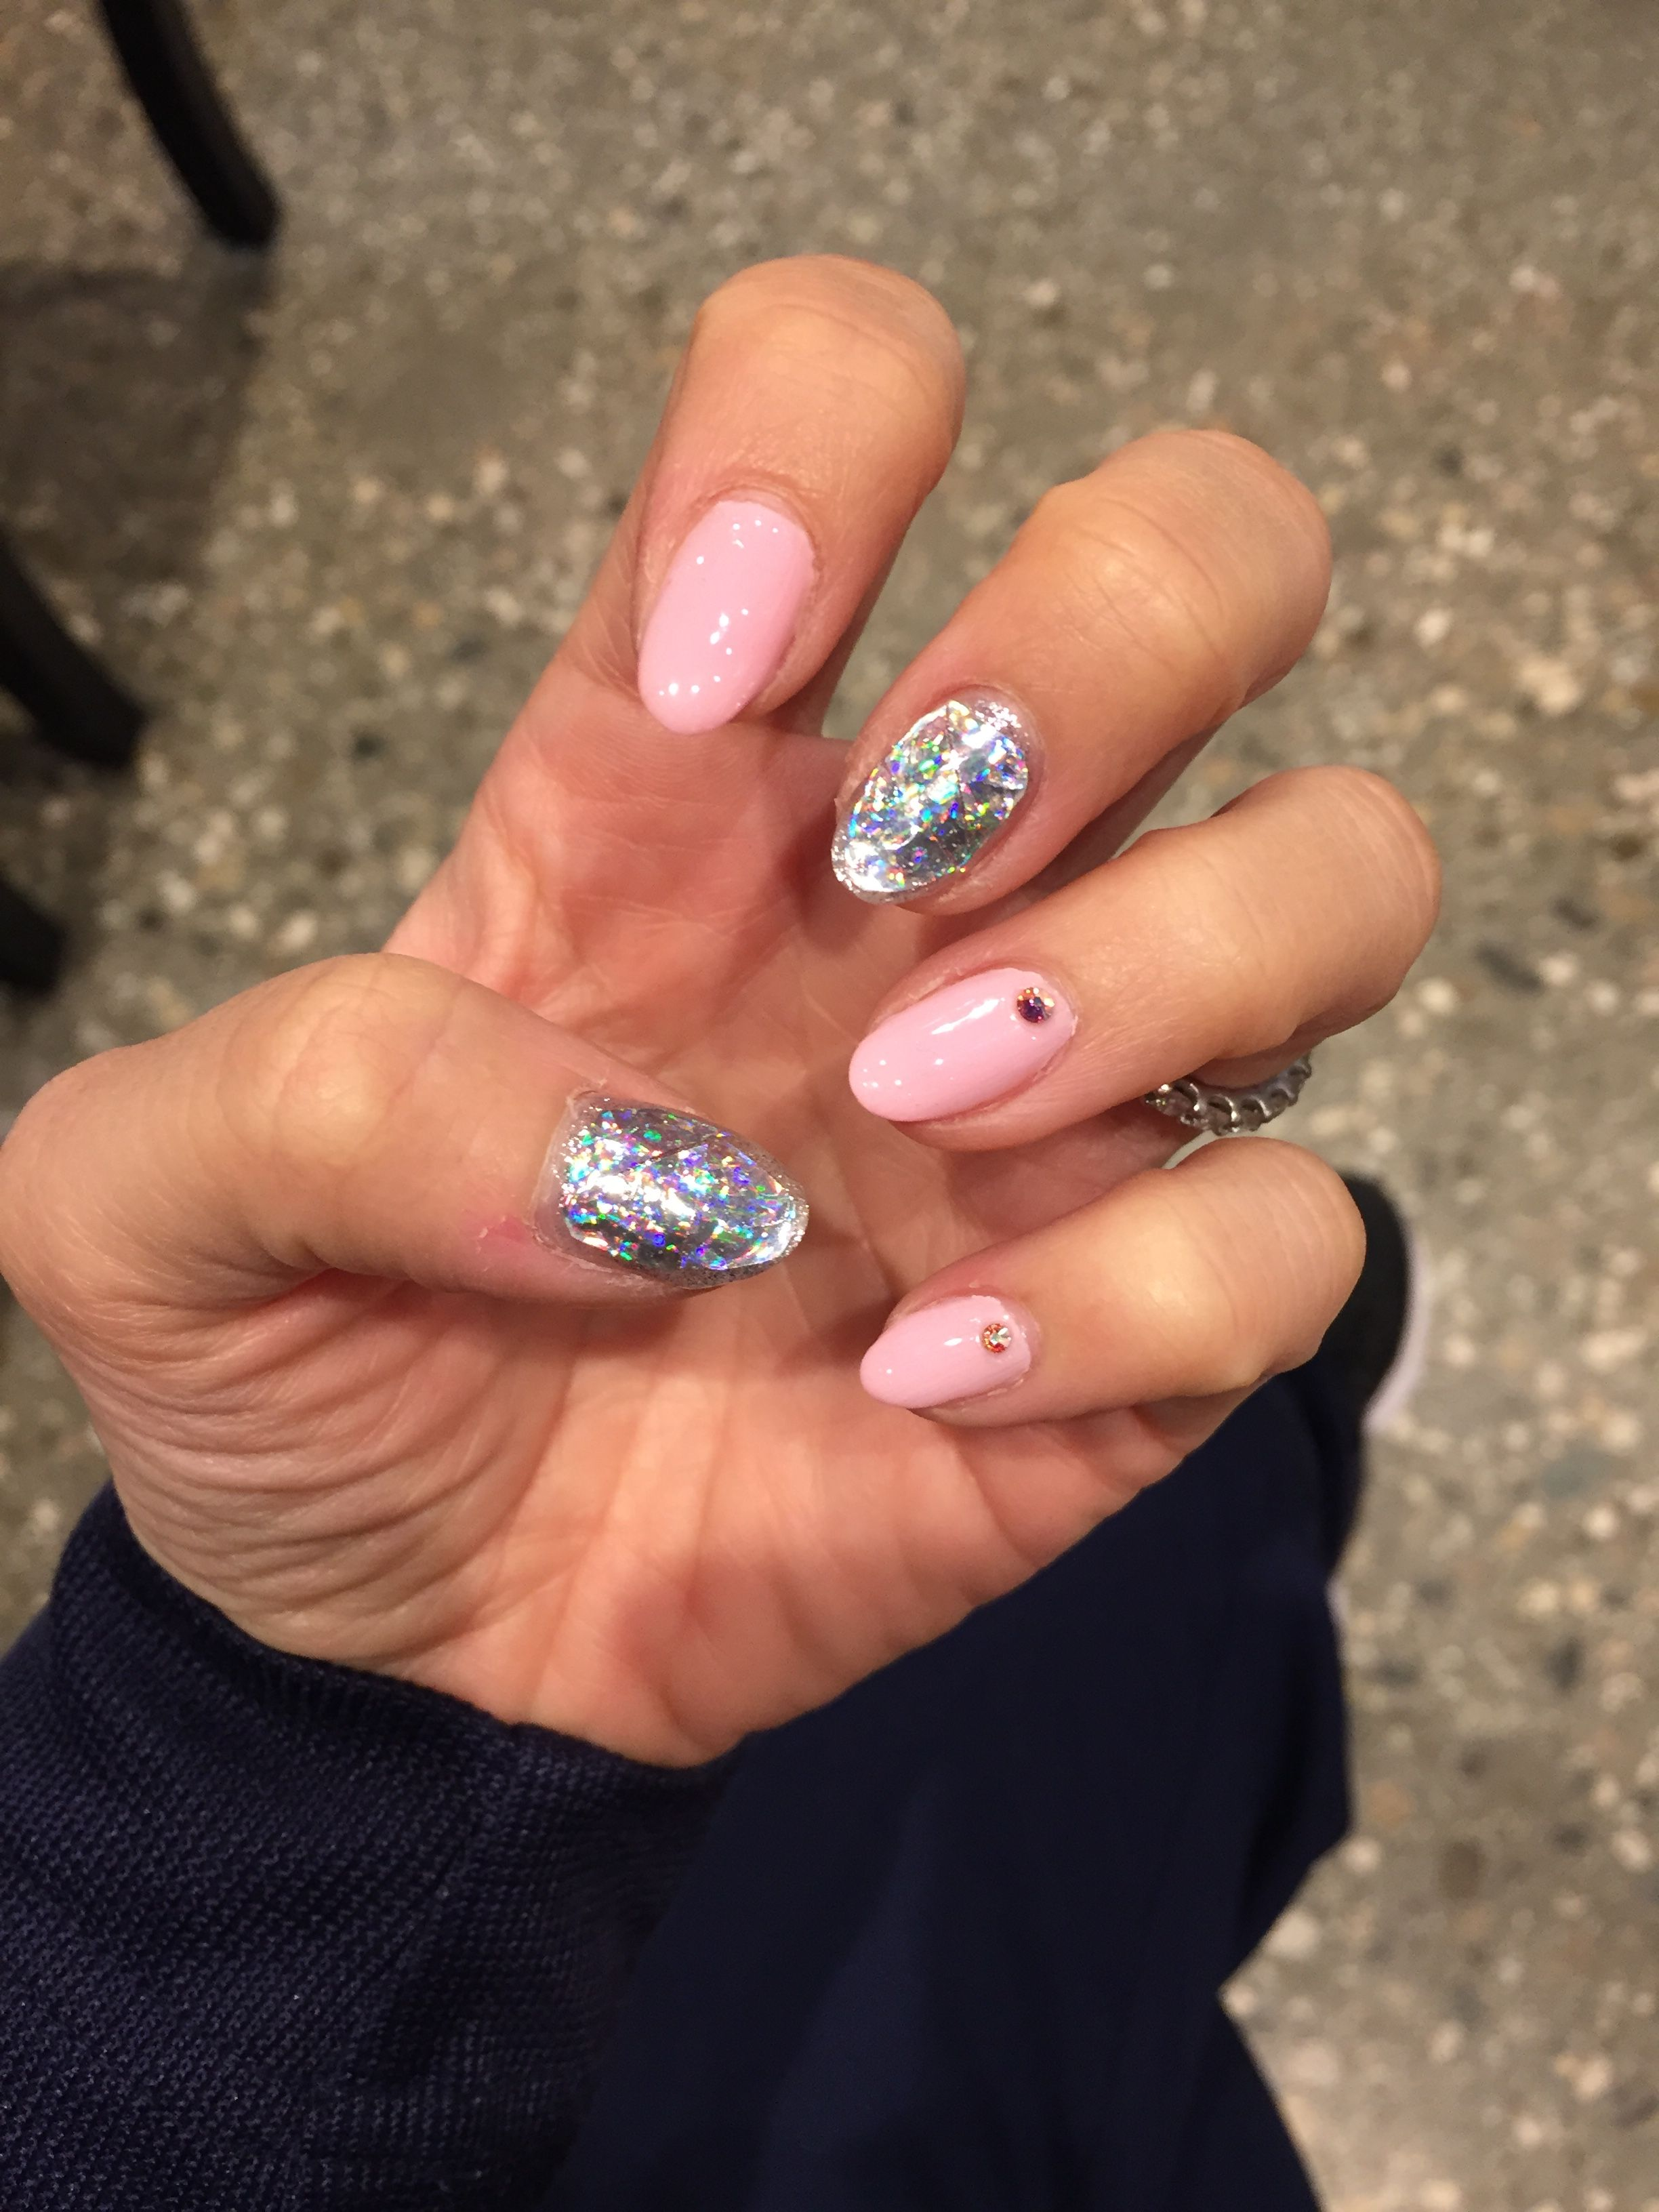 Korean Nail Trend Diamond Hologram Gel Nail Design With Swarovski